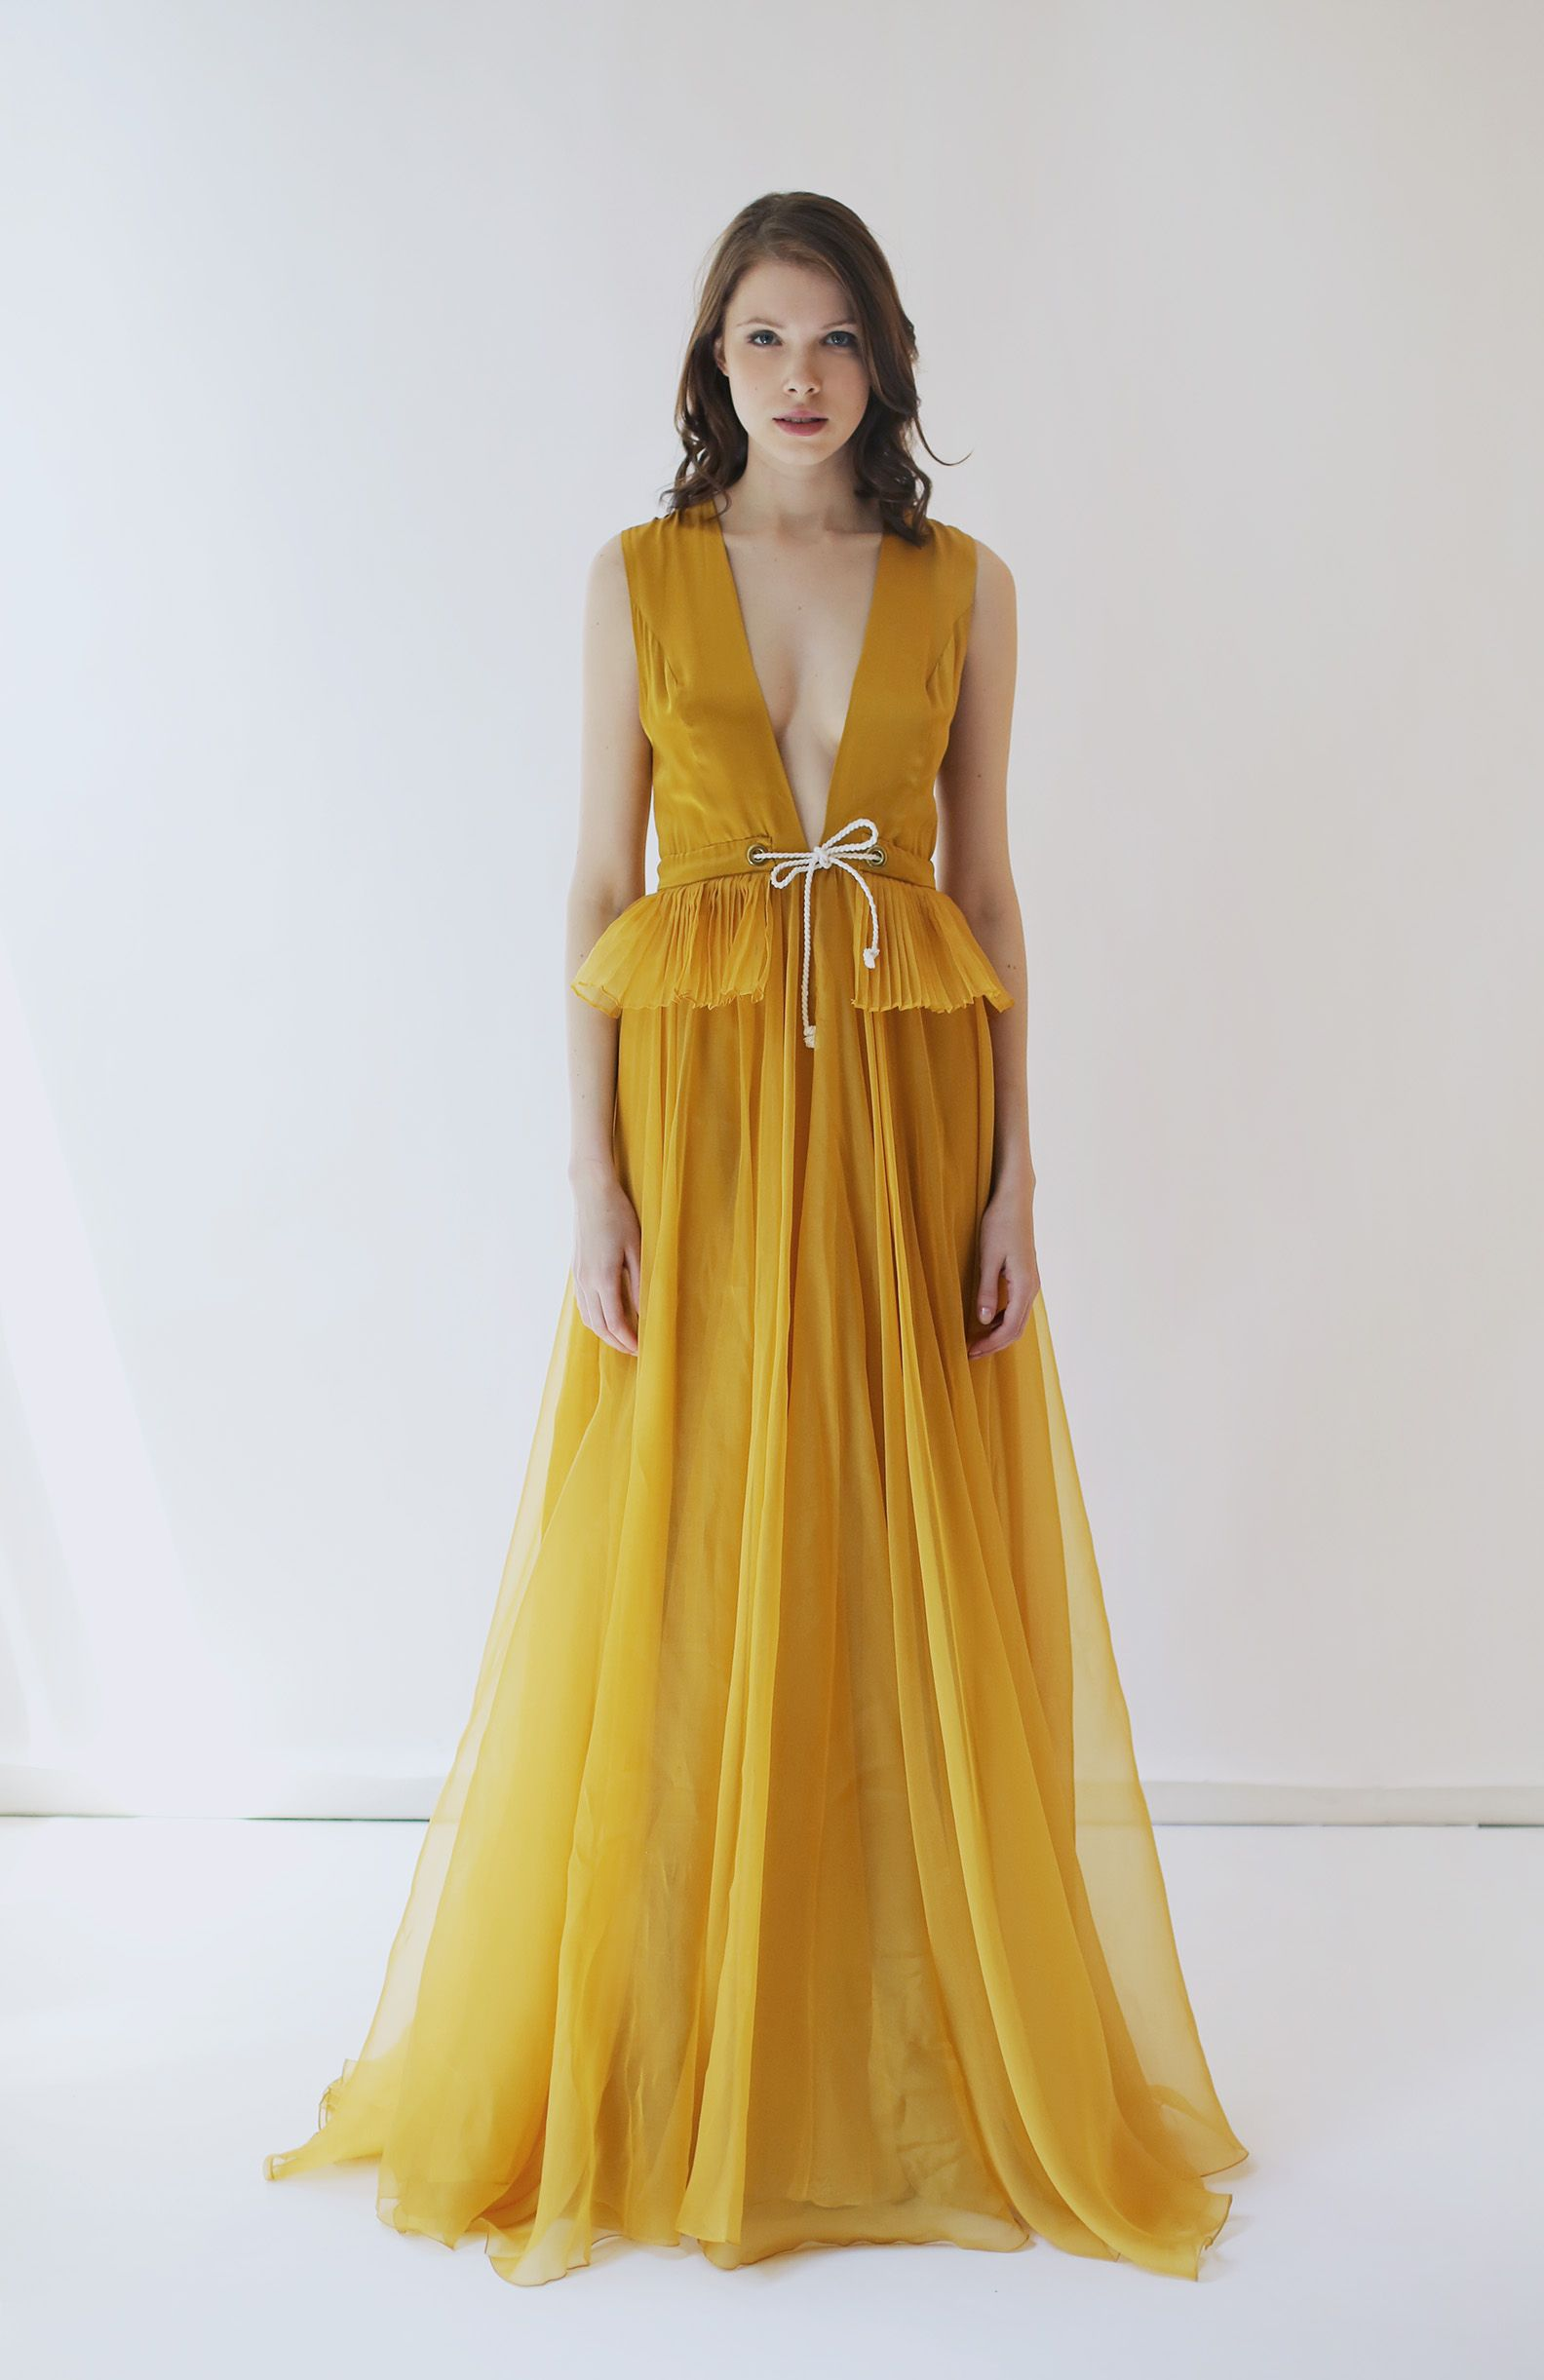 a80fb251d3f Gorgeous silk charmeuse and organza gown in a rich shade of Autumn Gold Mustard  yellow. . It has an alluring deep v-neckline and keyhole in back with a ...